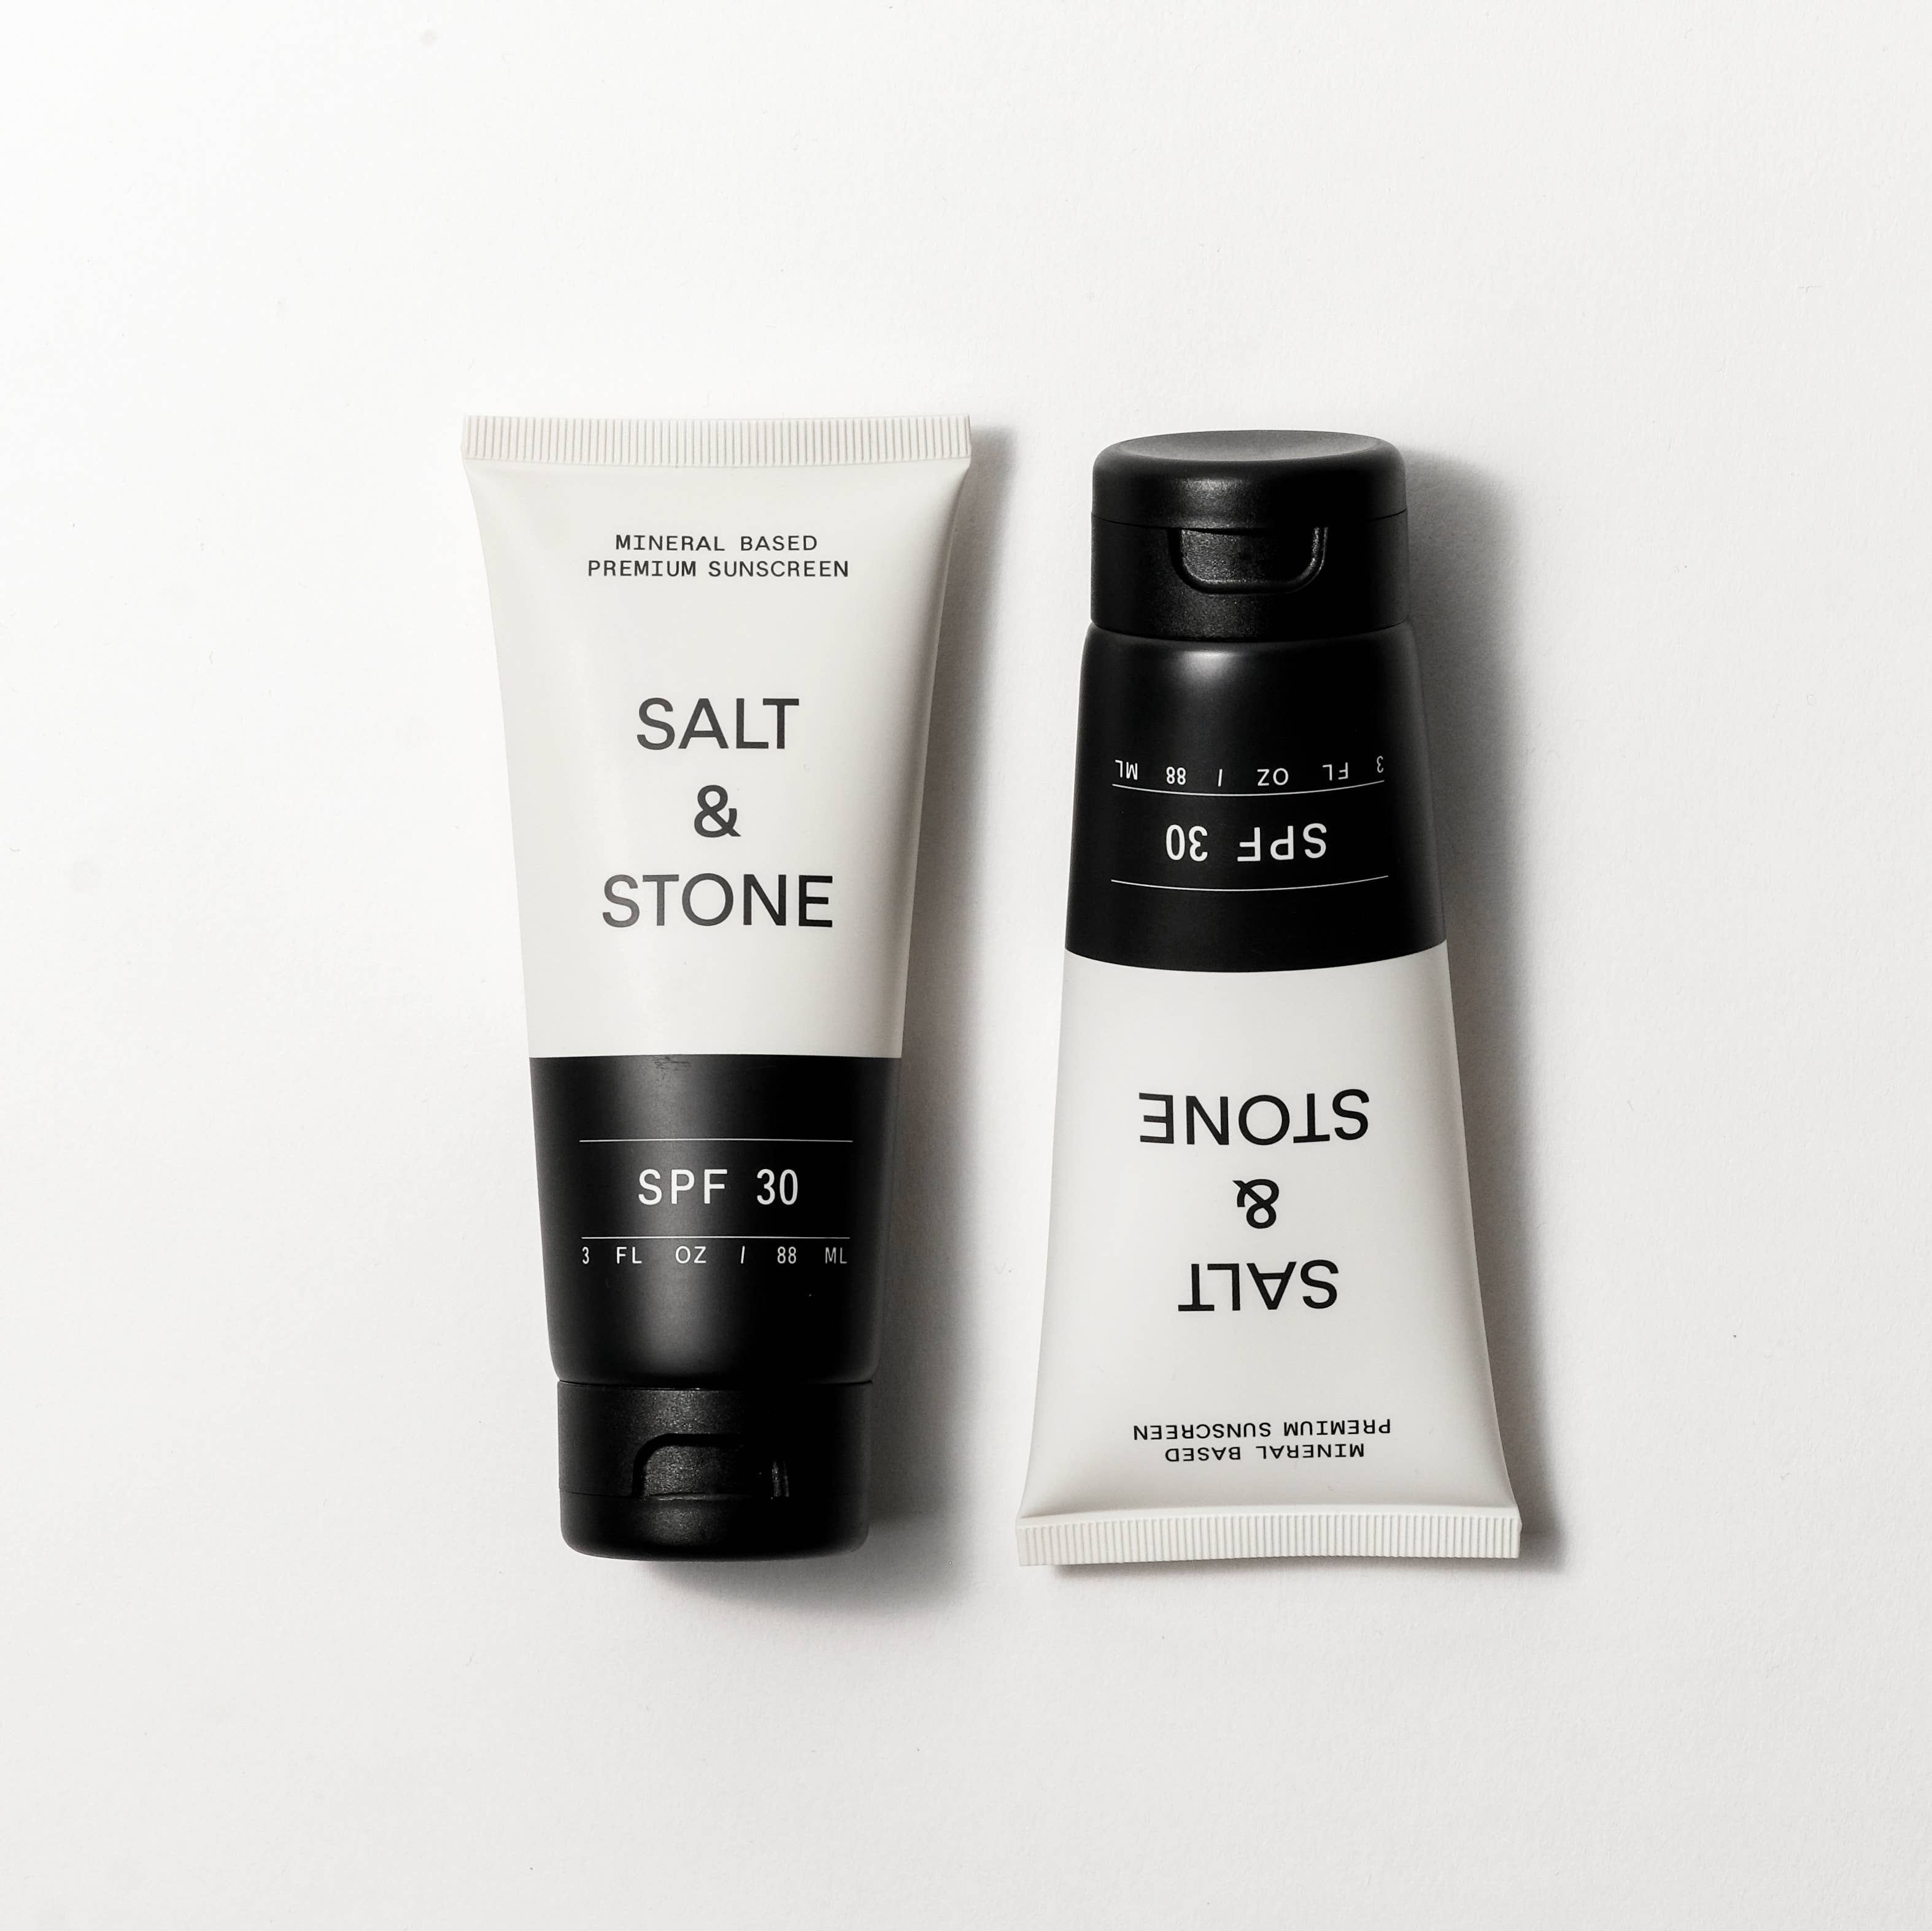 SPF 30 Natural Sunscreen by SALT & STONE